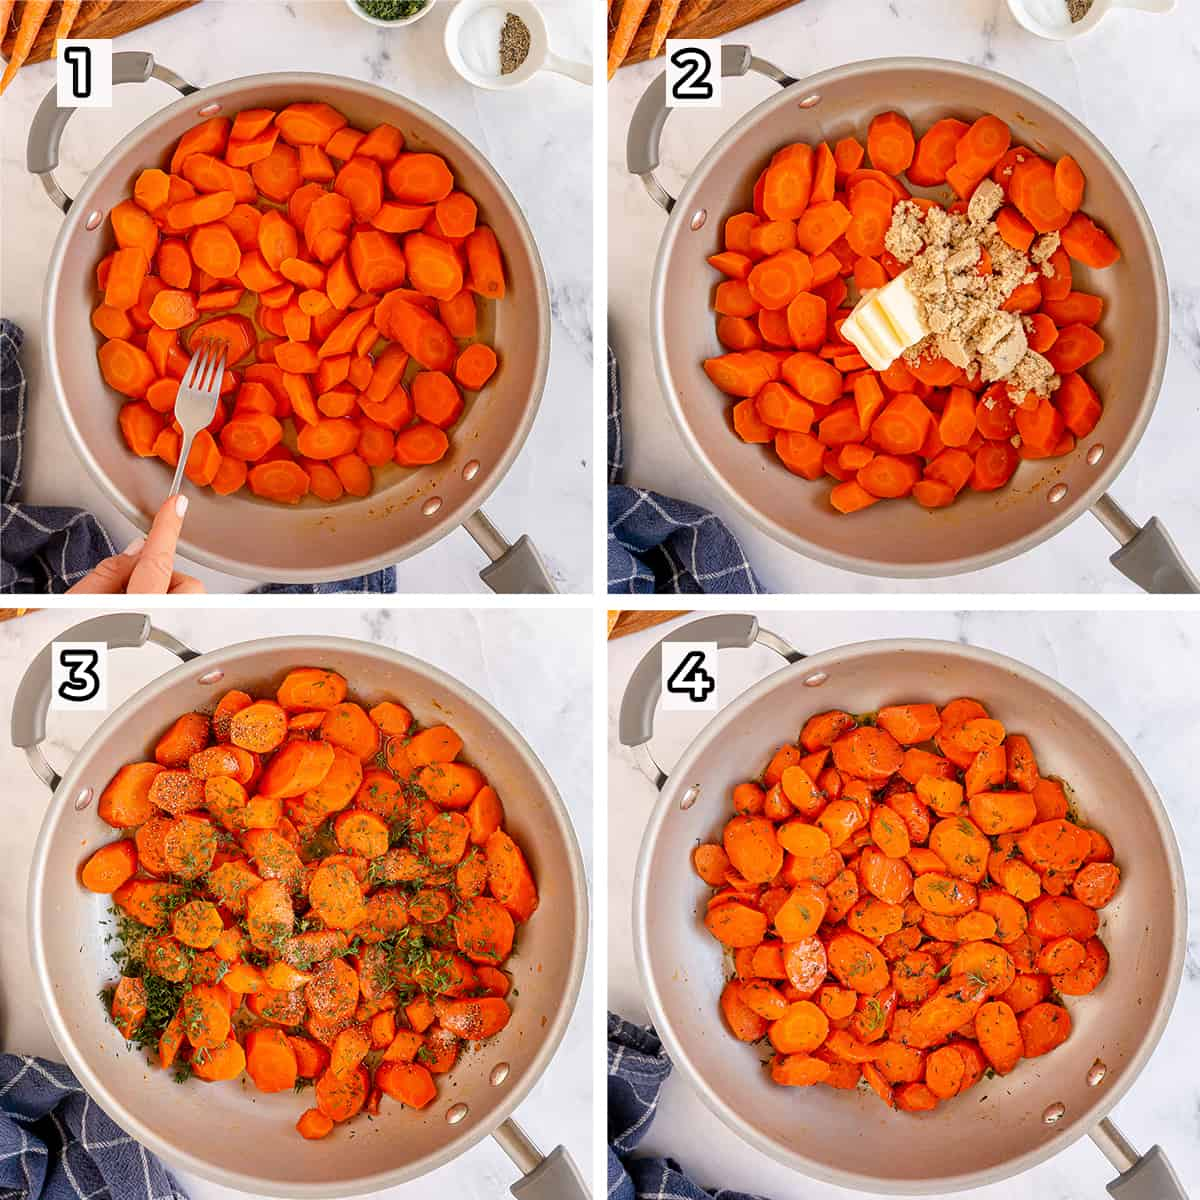 Carrots are cooked with brown sugar and dill in a skillet.